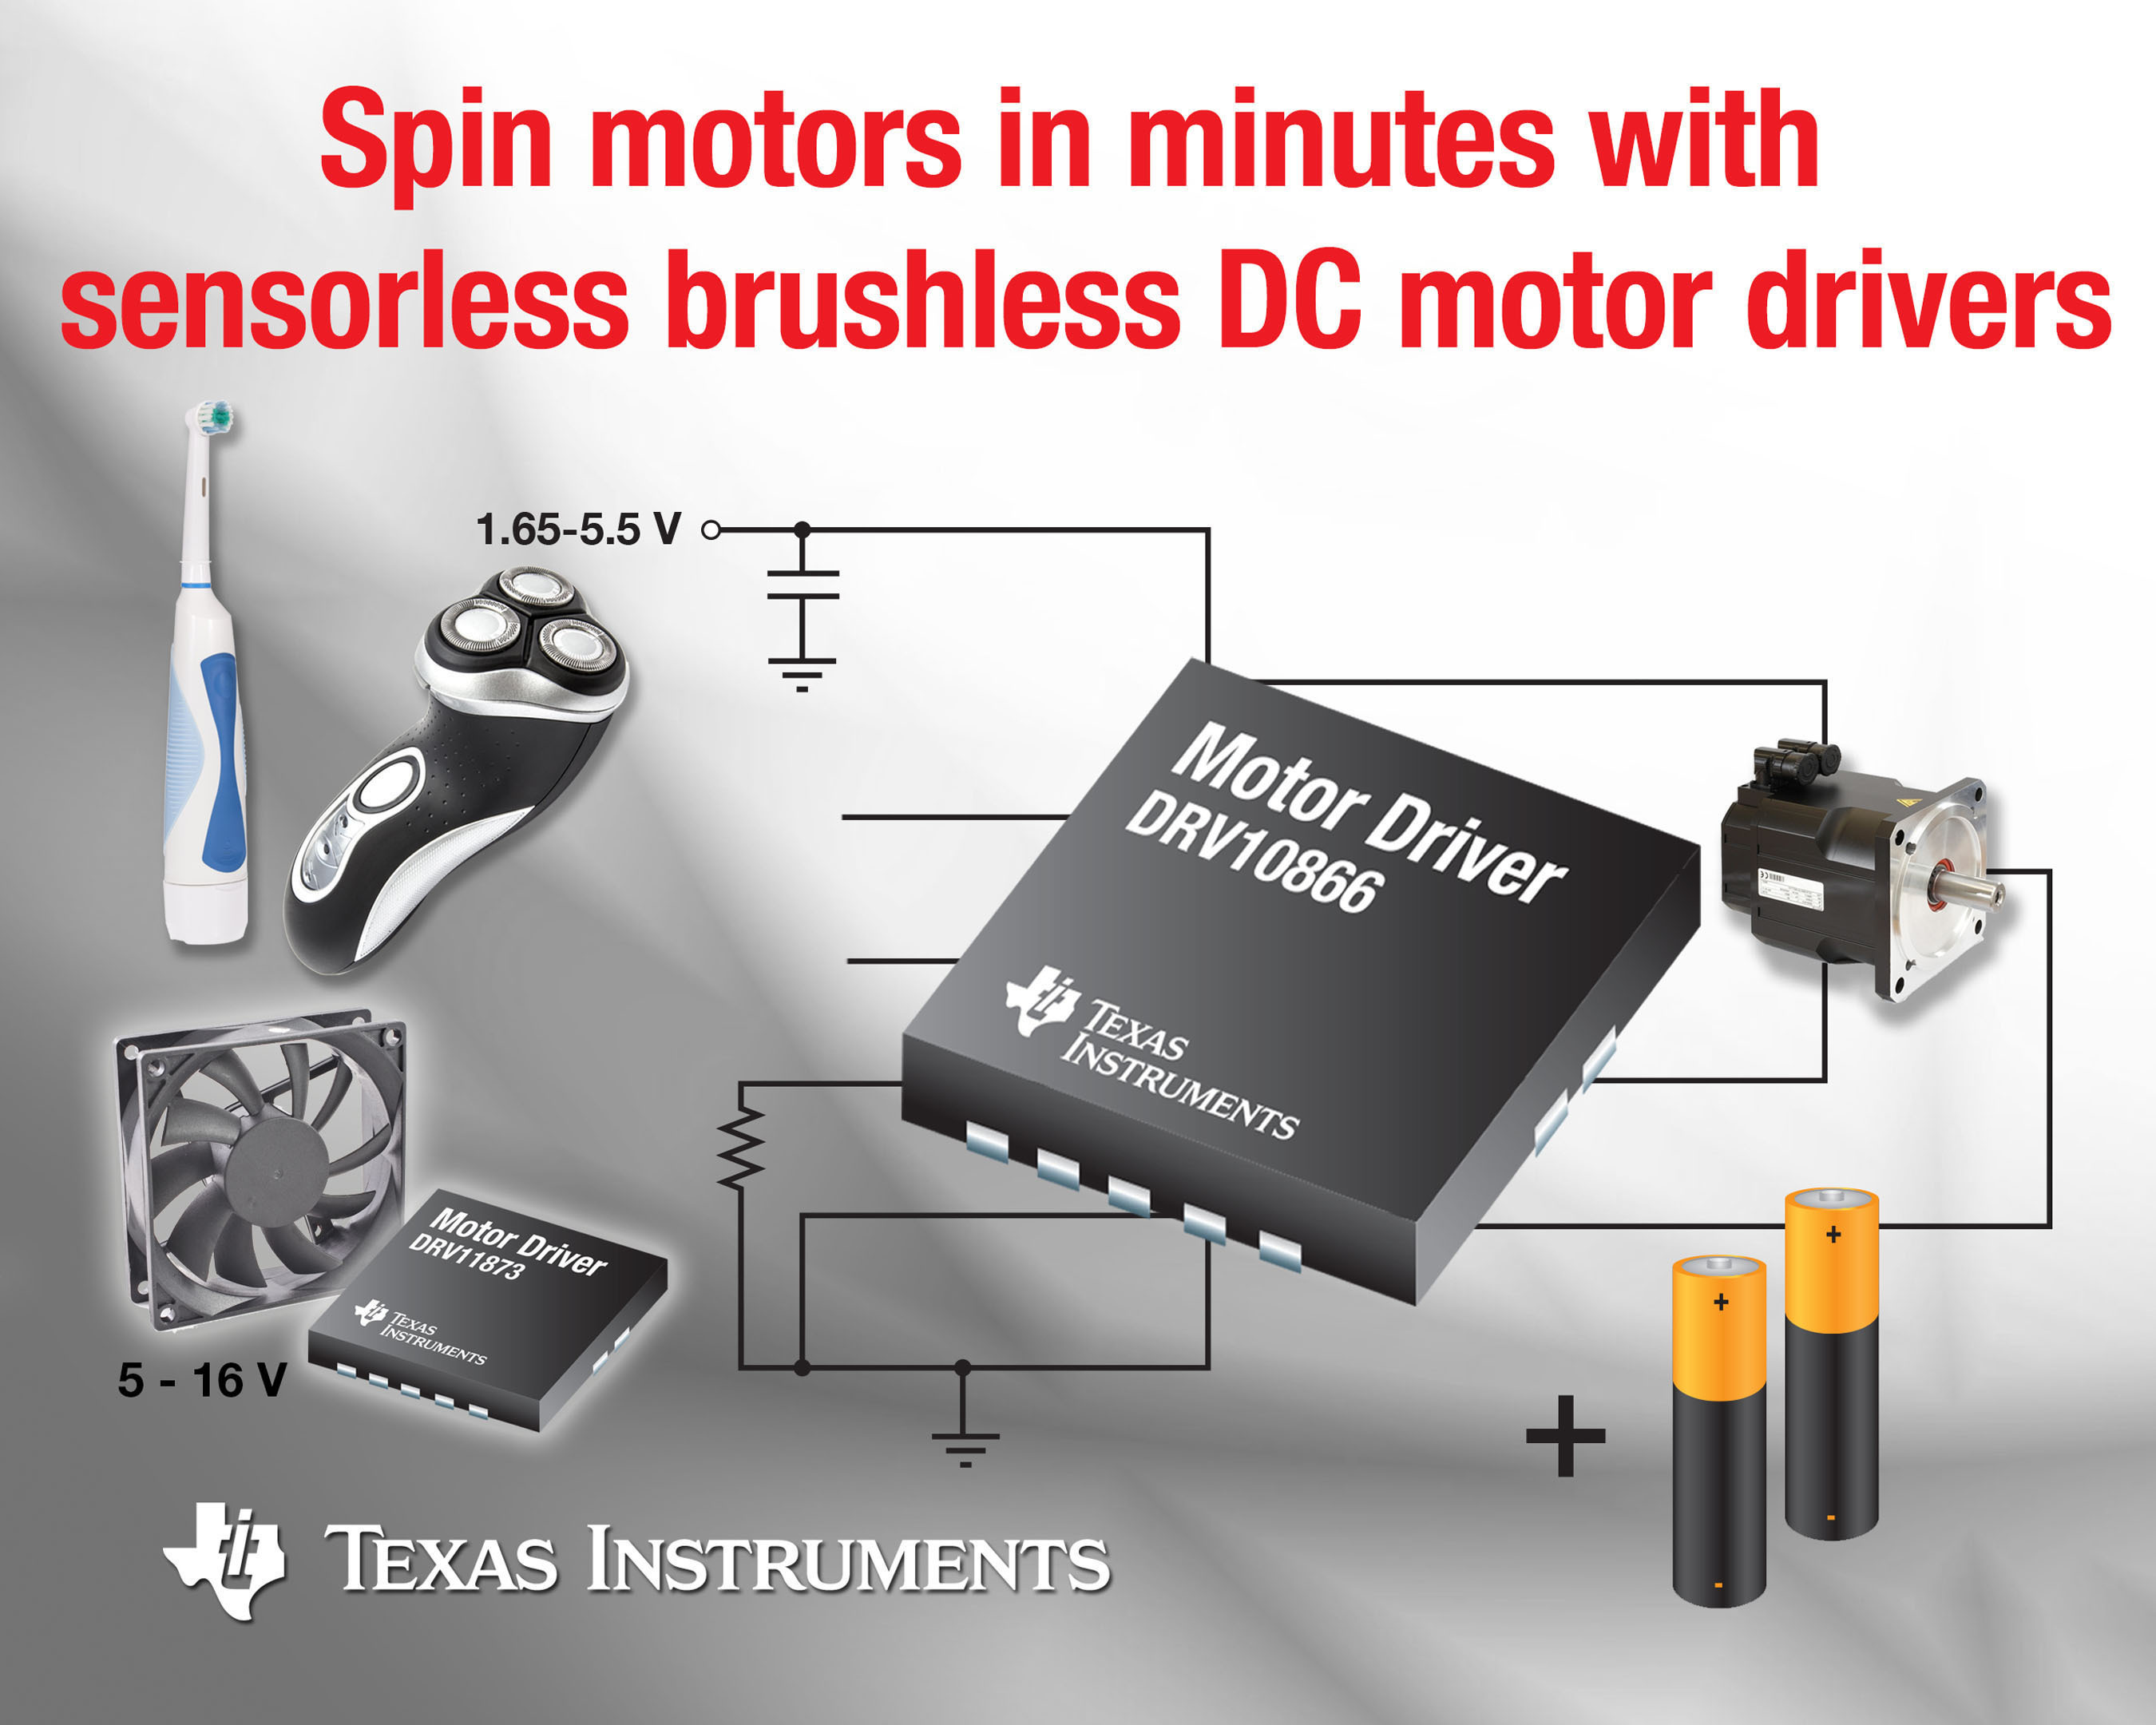 TI spins motors in minutes with sensorless, brushless DC motor drivers.  (PRNewsFoto/Texas Instruments Incorporated)